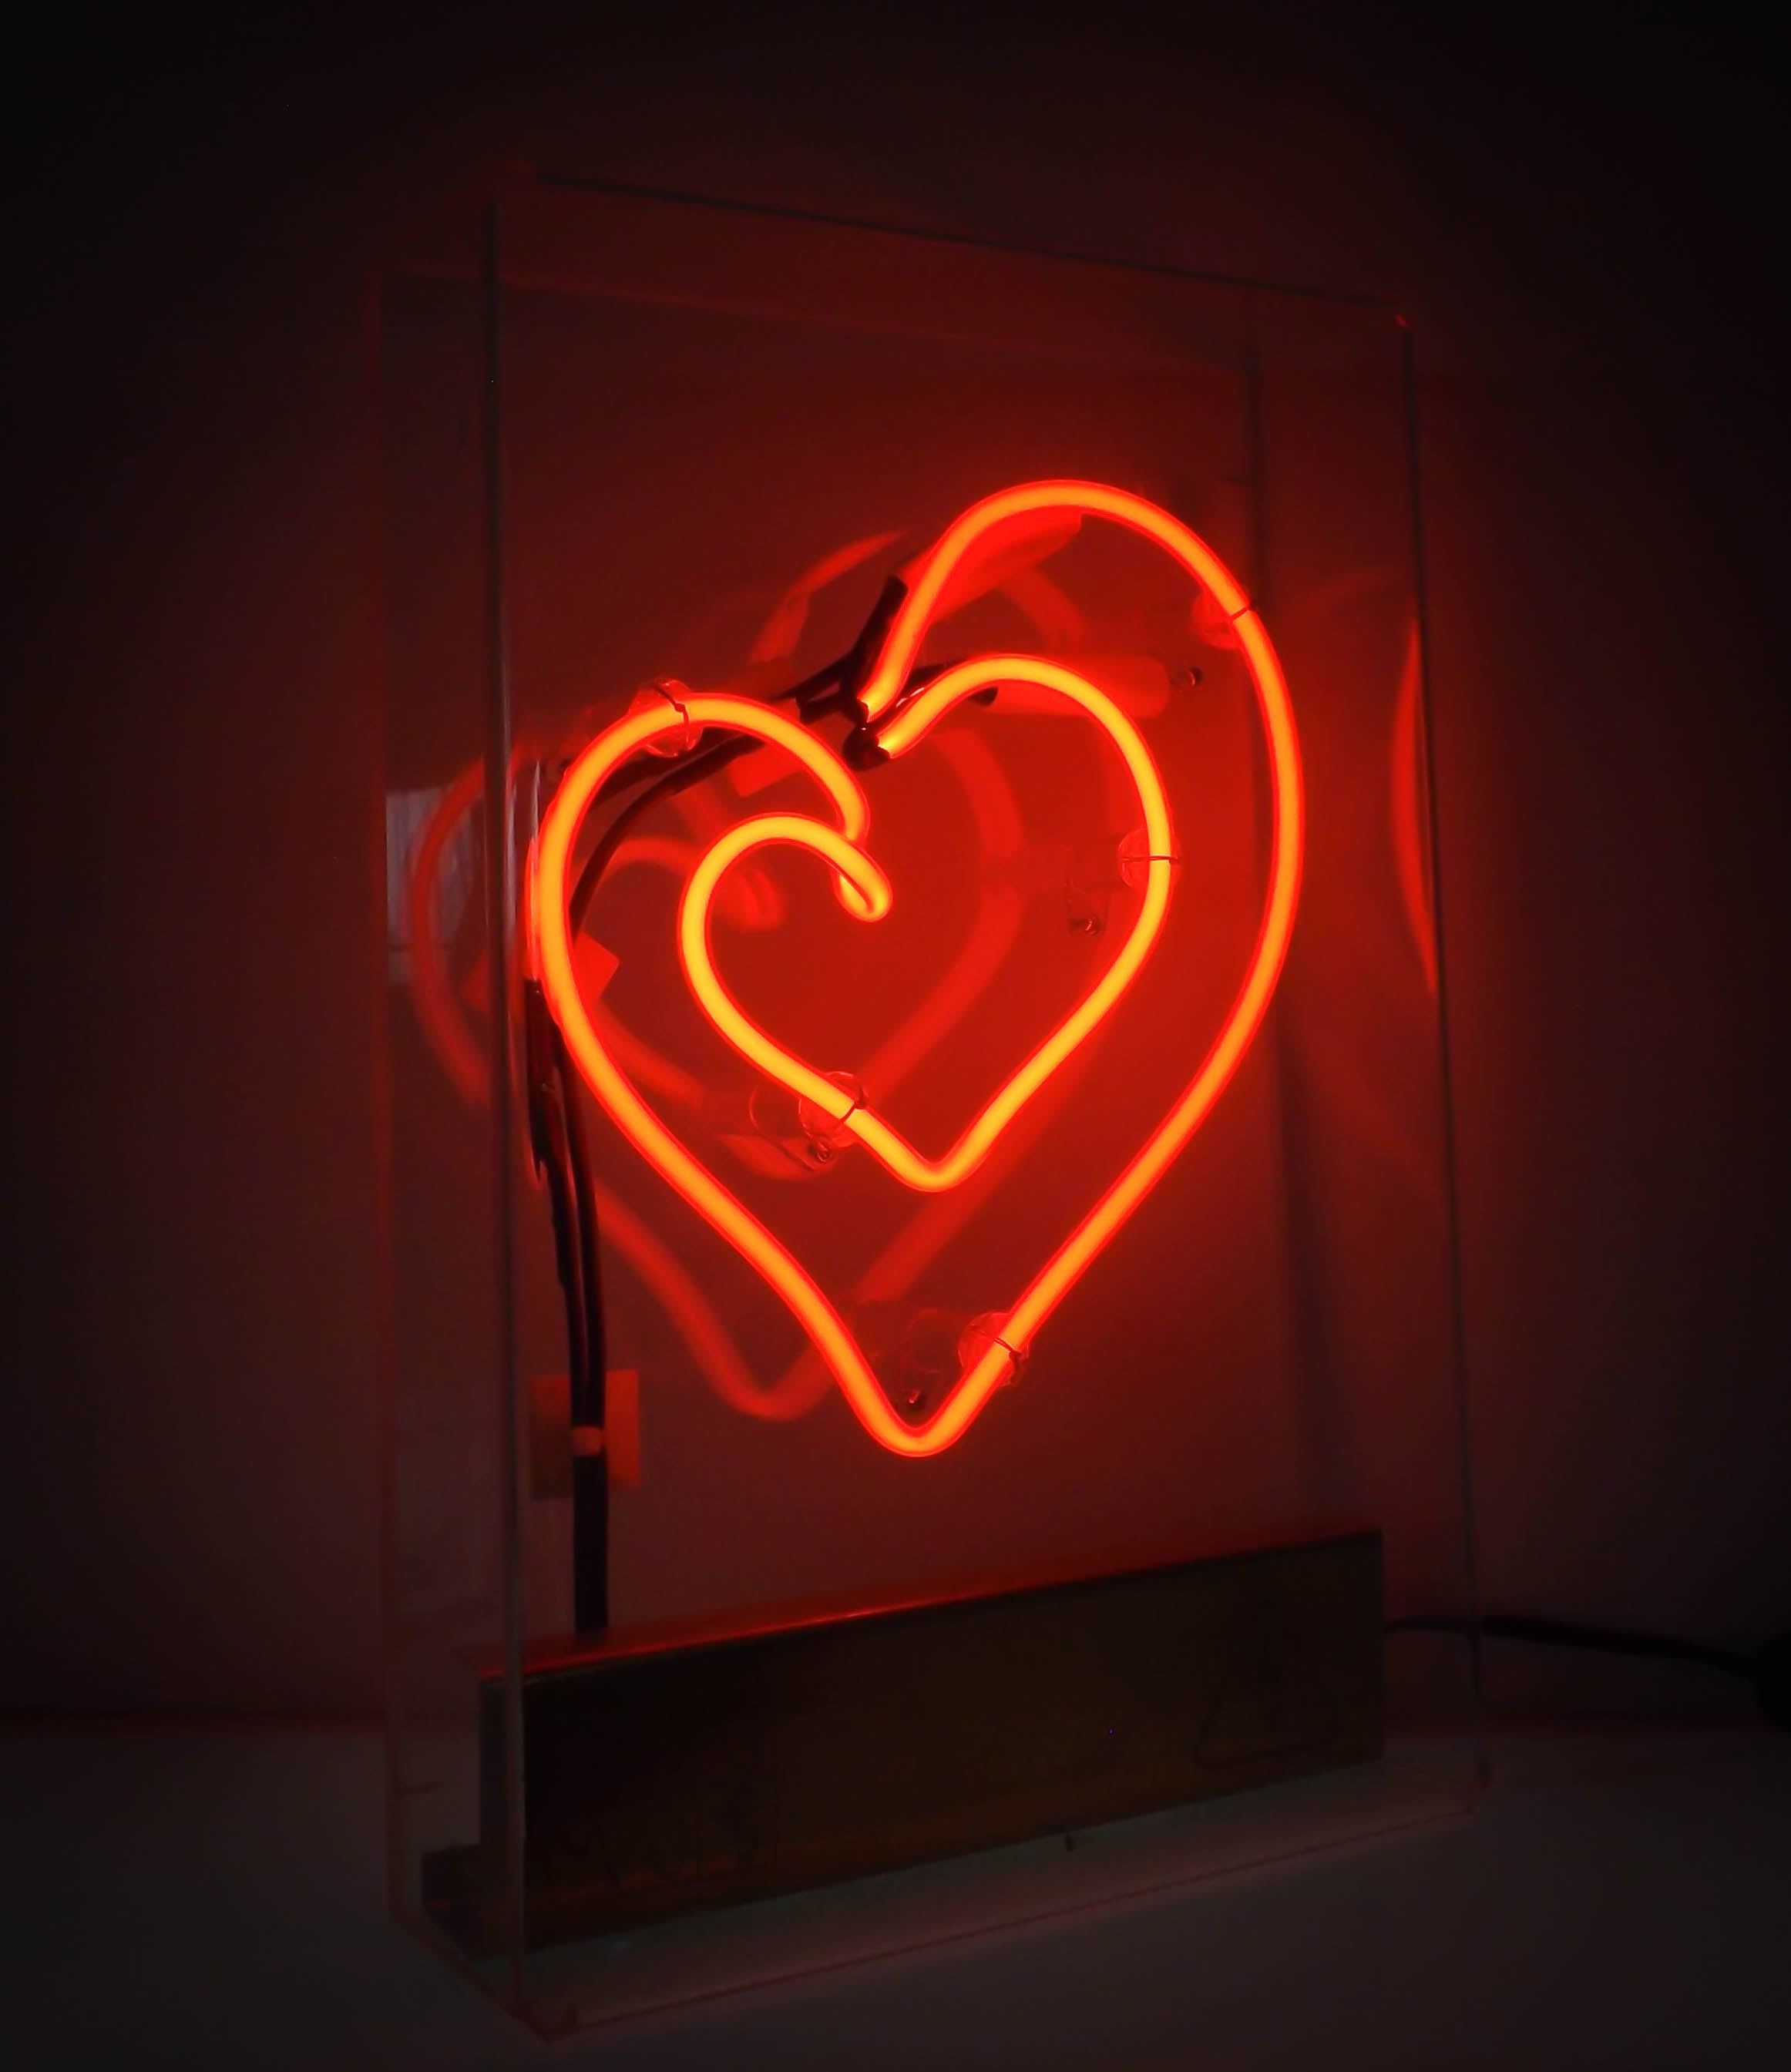 MUCH LOVE - Lampada al neon